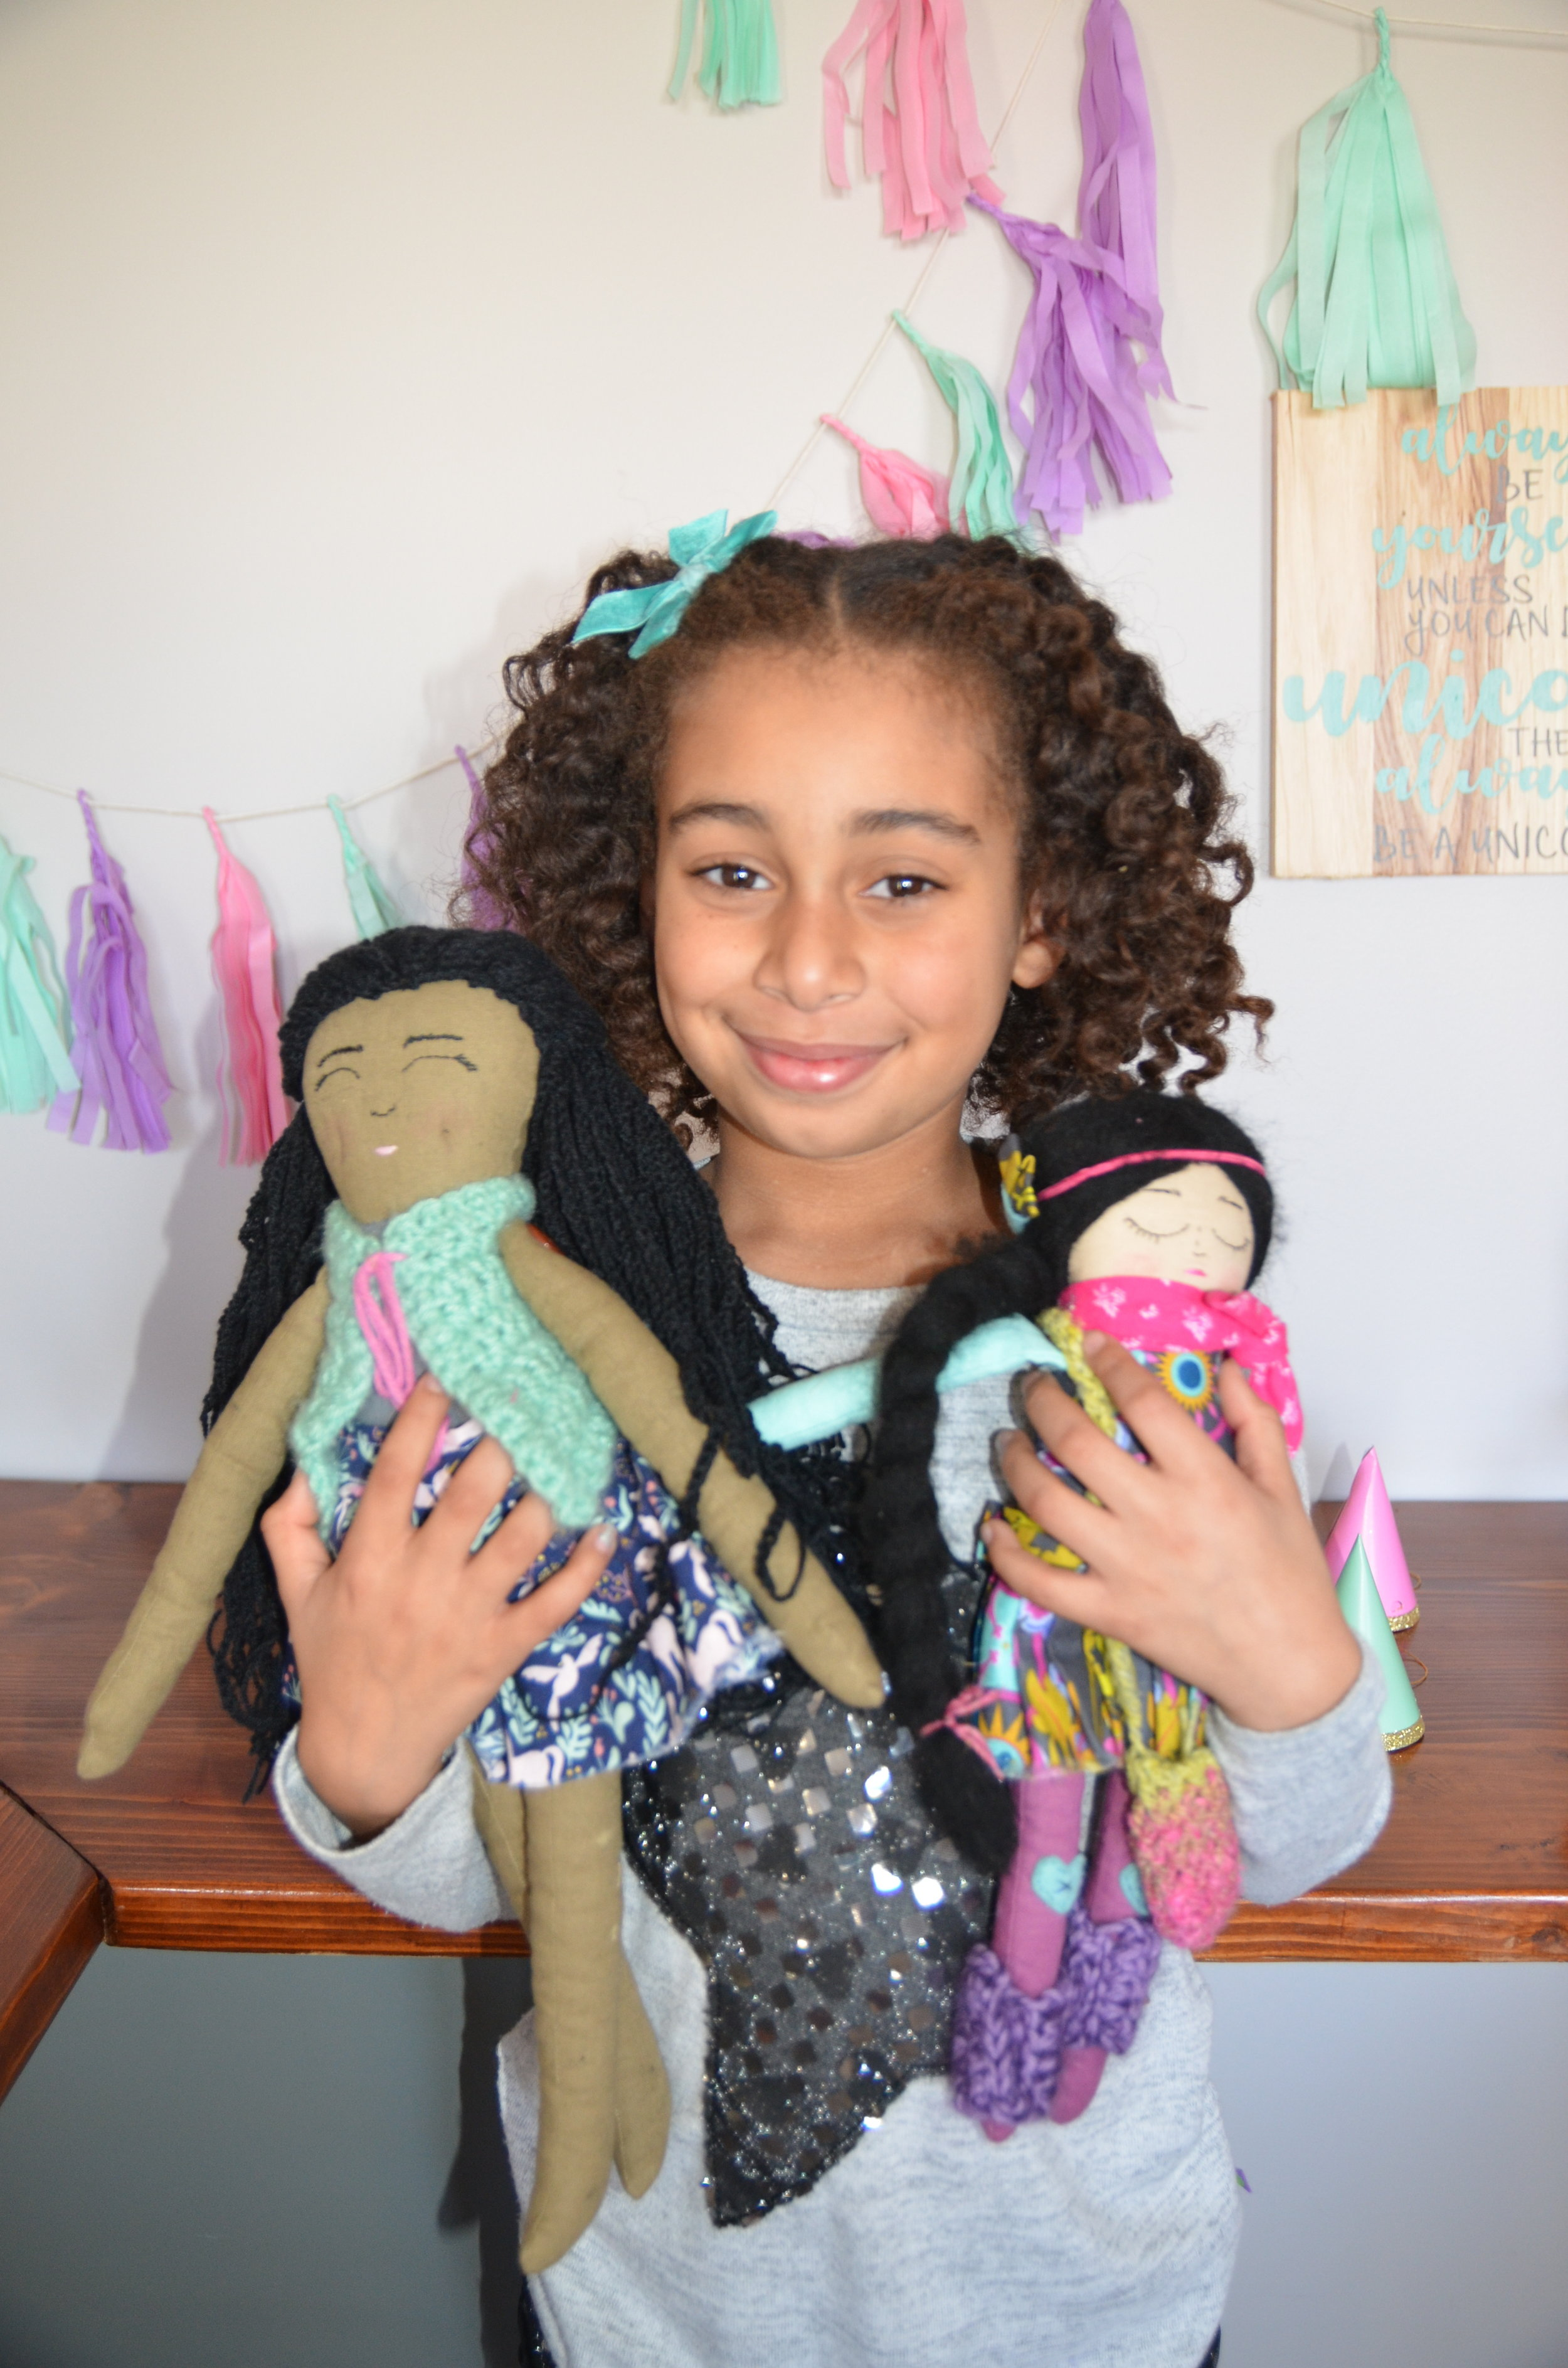 """I had planned in advance the gifts I wanted to get her for her birthday and I could think of nothing better than some handmade dolls. These ones are made from the incredible  Strange Folks Dolls.  I was utterly blown away by the results. I had sent her some pictures of Makkedah and told her a bit about her personality- her joyful spirit, her kind heart, and asked that she create a doll to look like her. The doll on the left is what she came up with. And the doll on the right is her precious friend that got to join in on the fun. Kristin makes her dolls with """"coffee stained linen/cotton, beautiful vintage buttons, wool stuffing, crocheted clothing, and simple embroidery in a """"sketched"""" style."""" When the package arrived in the mail, I kid you not, I cried. I was so touched with the love and care she put into creating these dolls for my daughter. Every little details absolutely floored me. I could not wait to give these dolls to Makkedah- more on that later."""